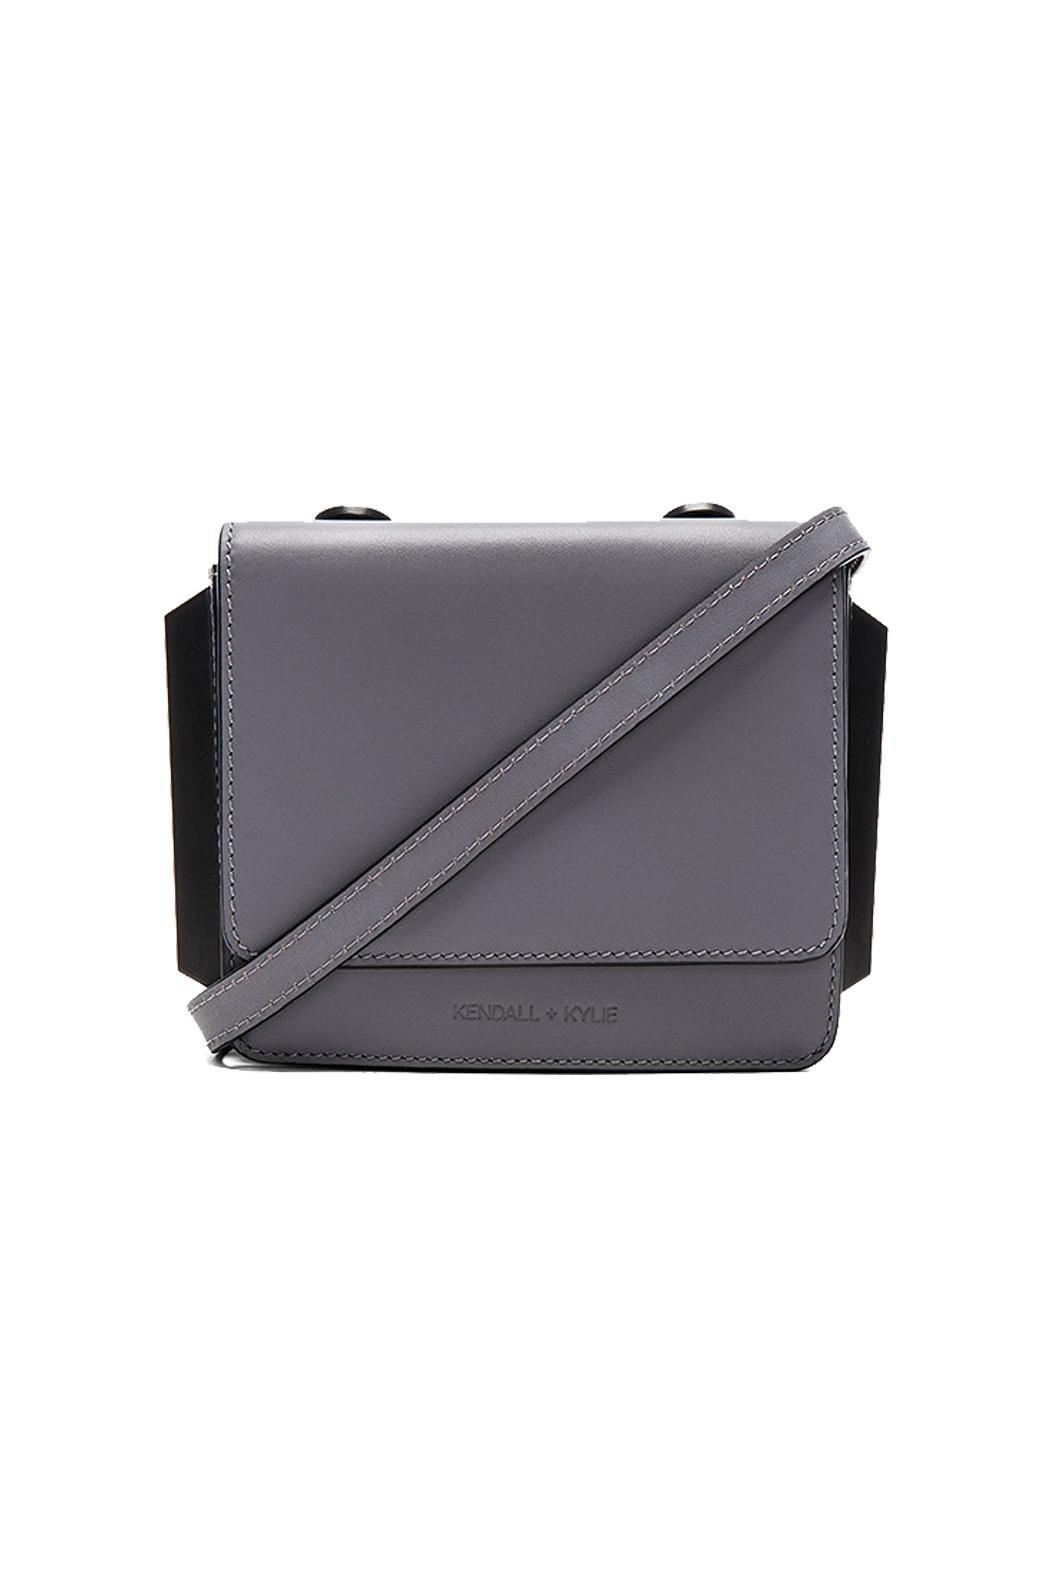 Kendall + Kylie Baxter Crossbody Bag - Front Cropped Image